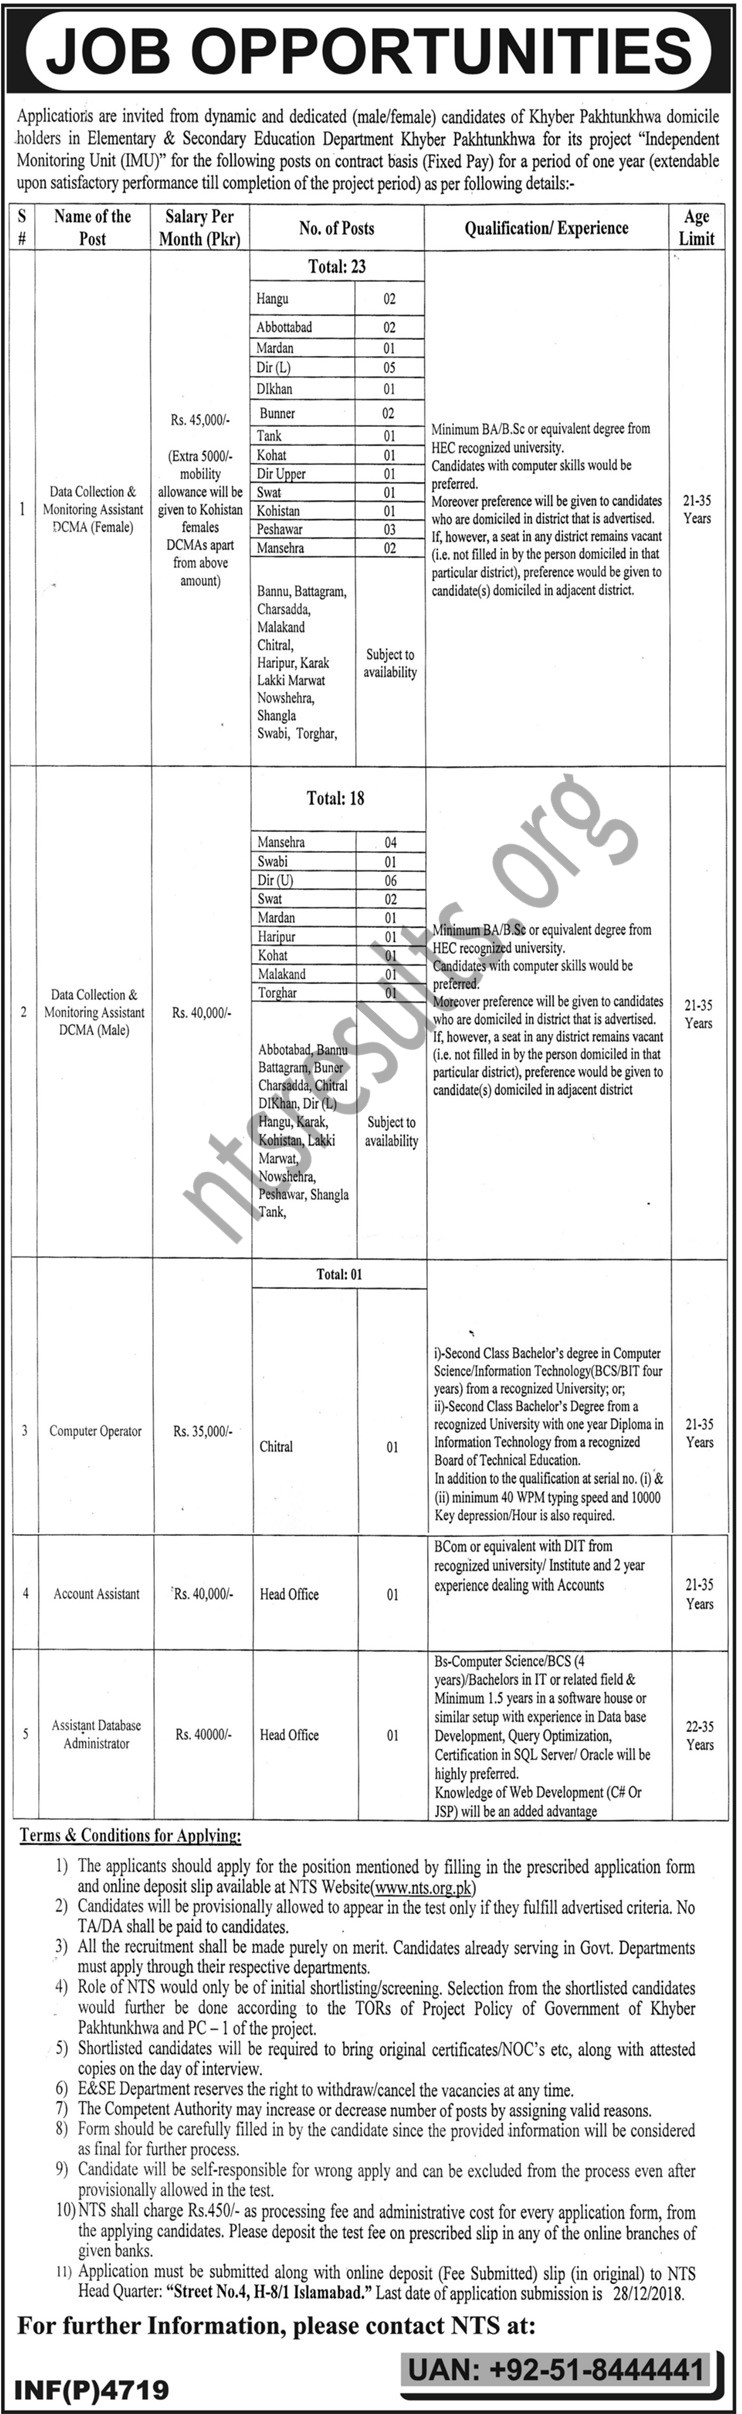 IMU Elementary Secondary Education Department KPK Jobs Via NTS